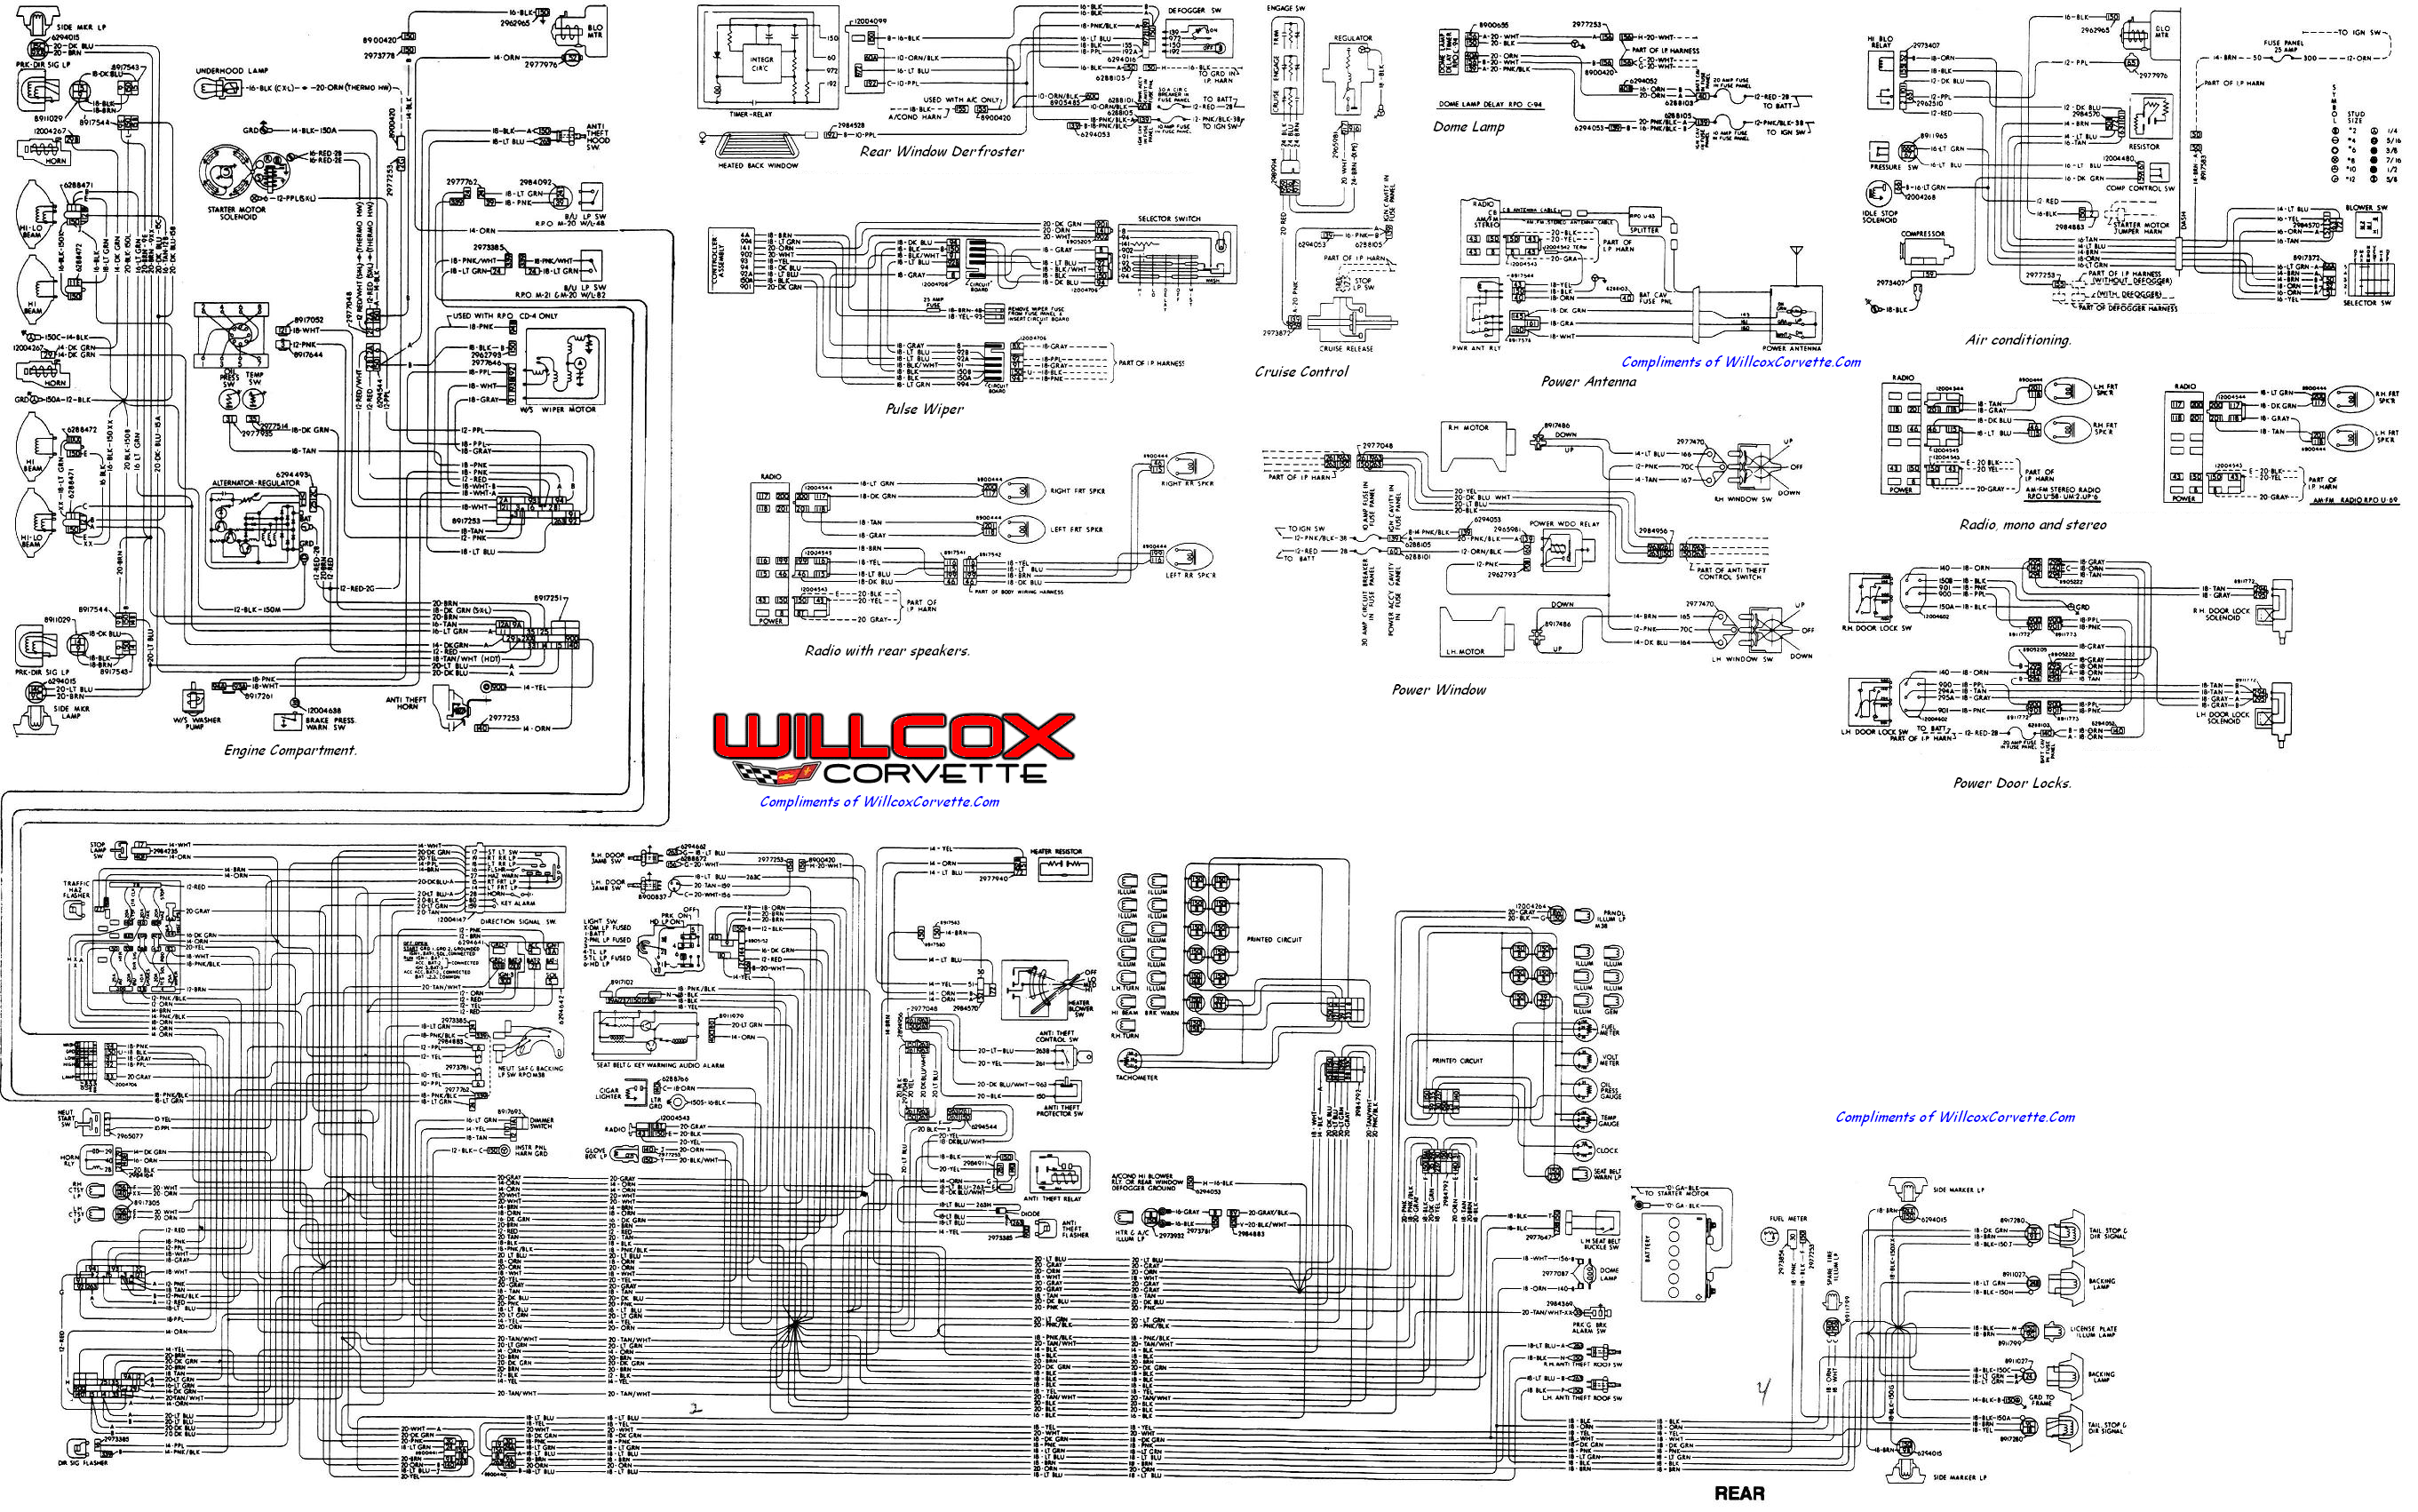 78 tracer schematic use this one 1980 corvette fuse box diagram wiring diagram wiring diagram